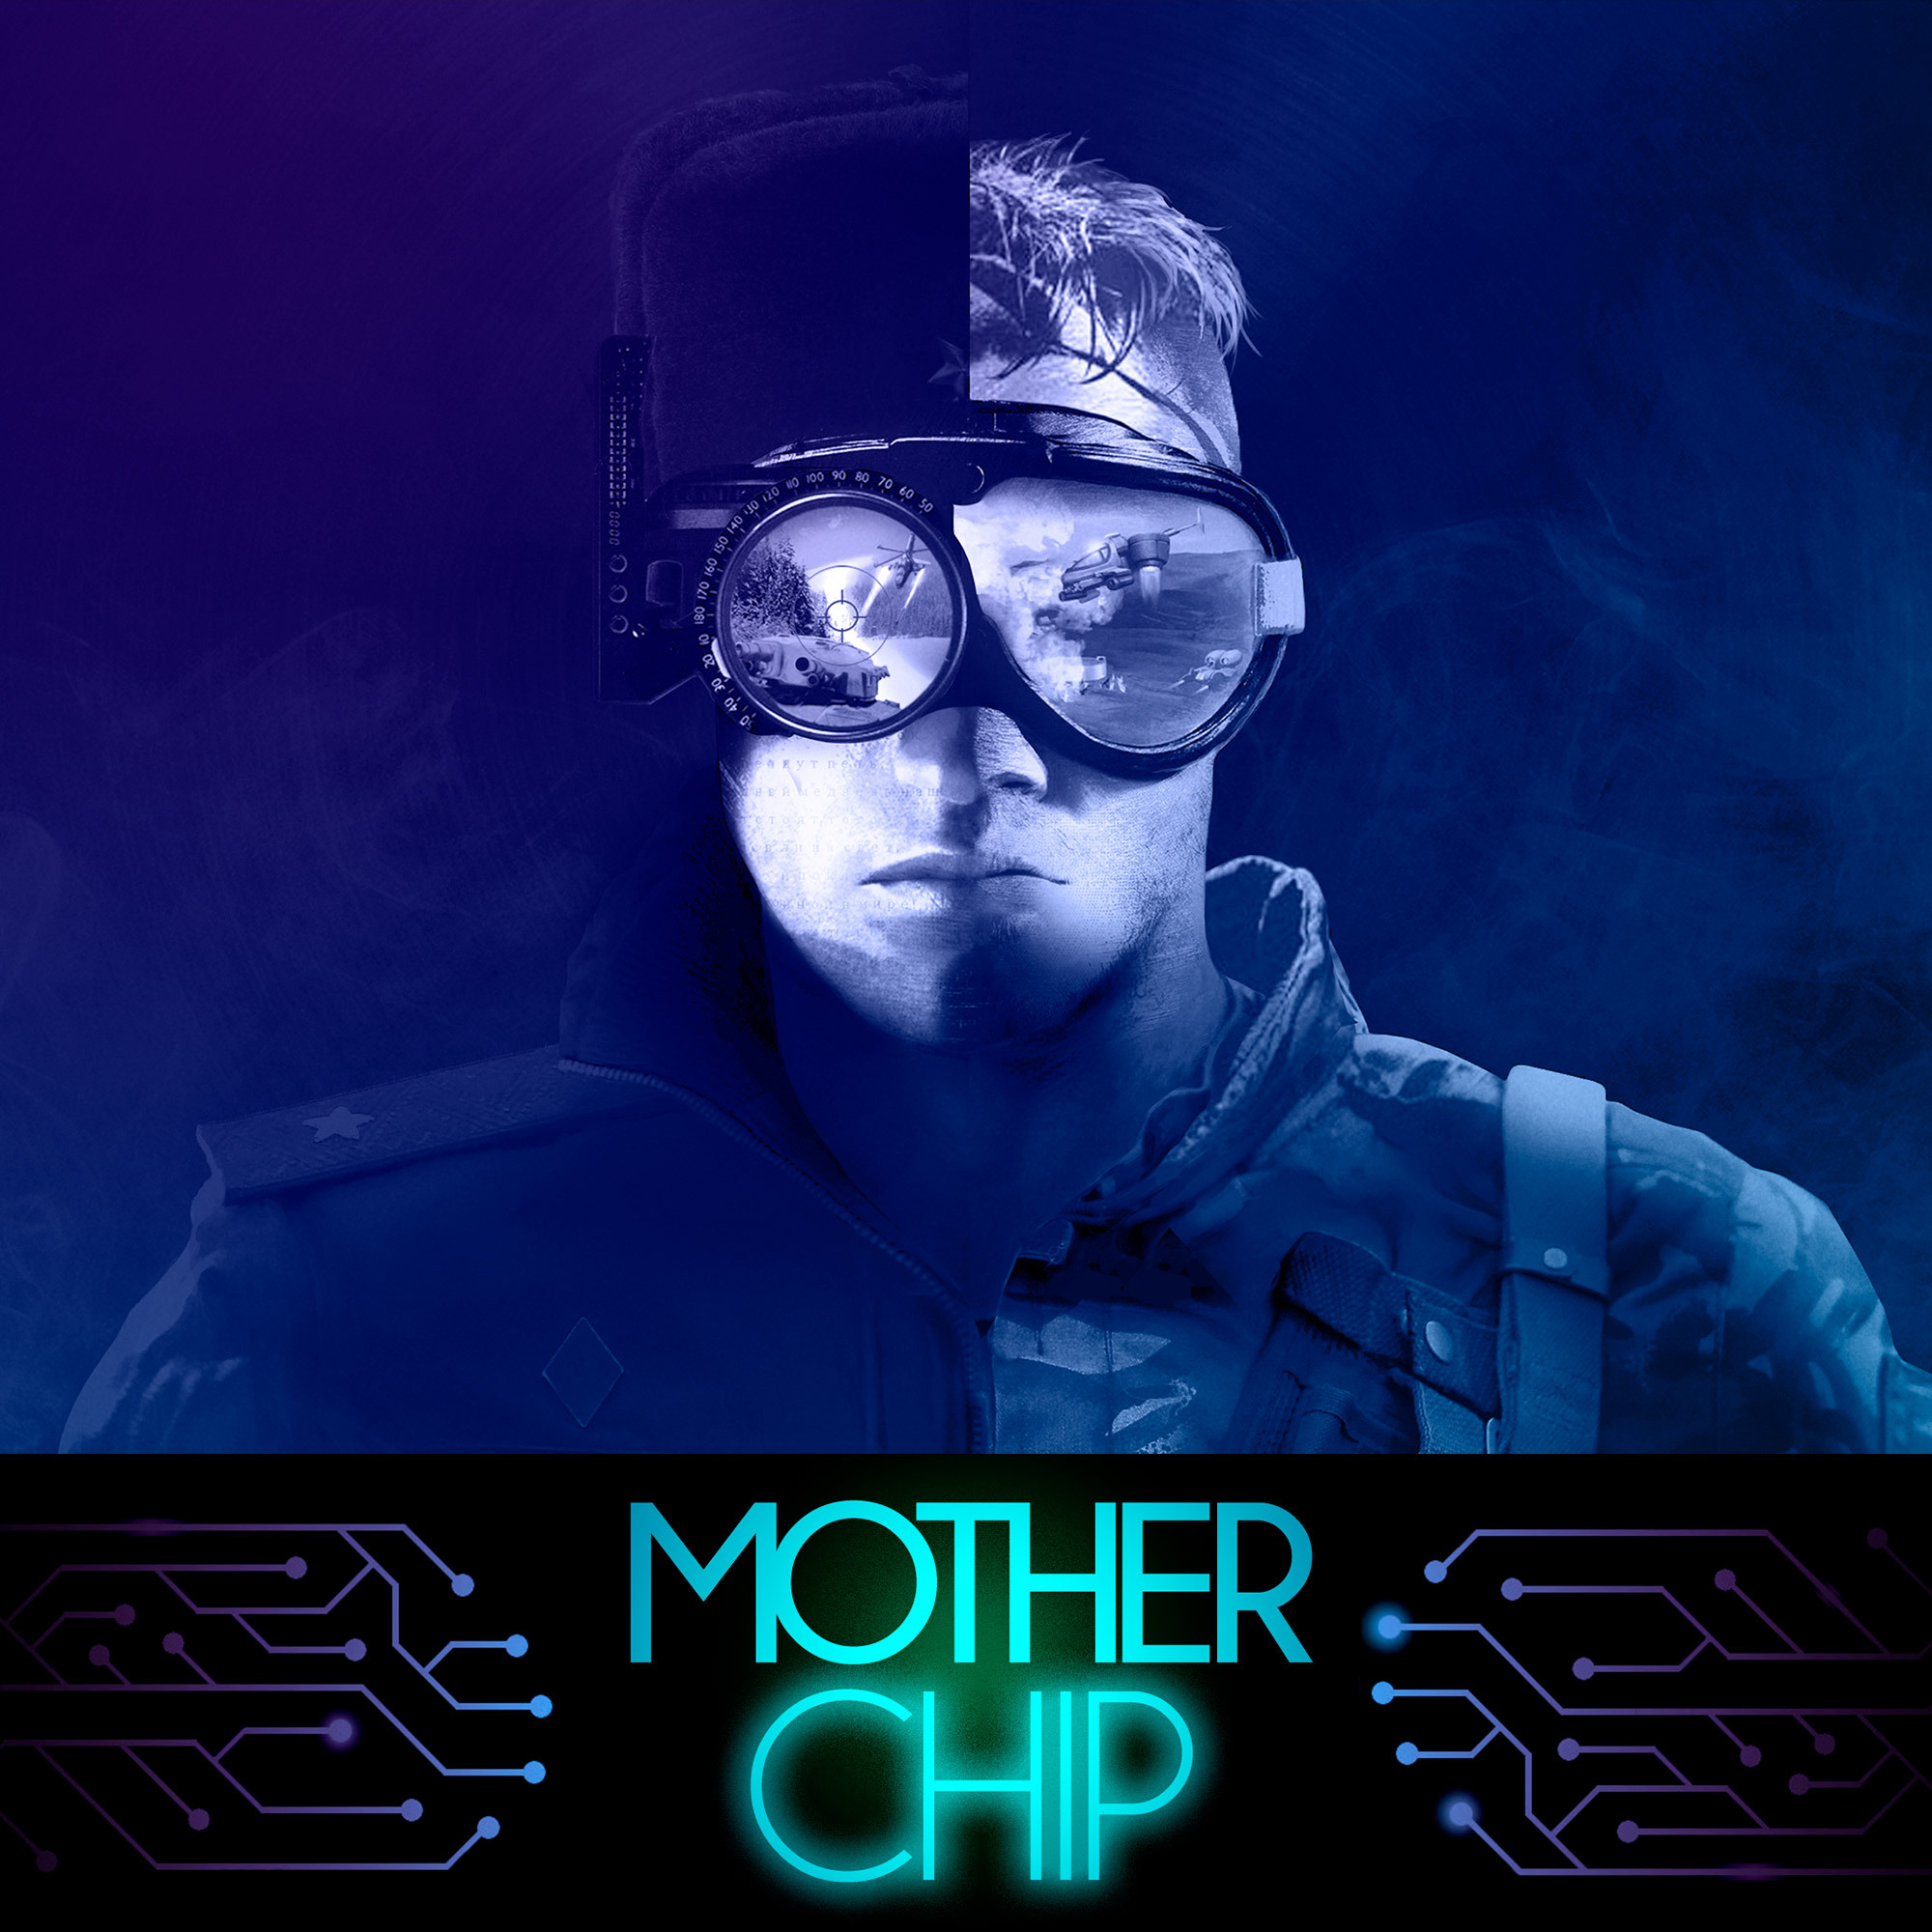 MotherChip #280 - Command & Conquer Remastered, Monster Train, Atomicrops e mais